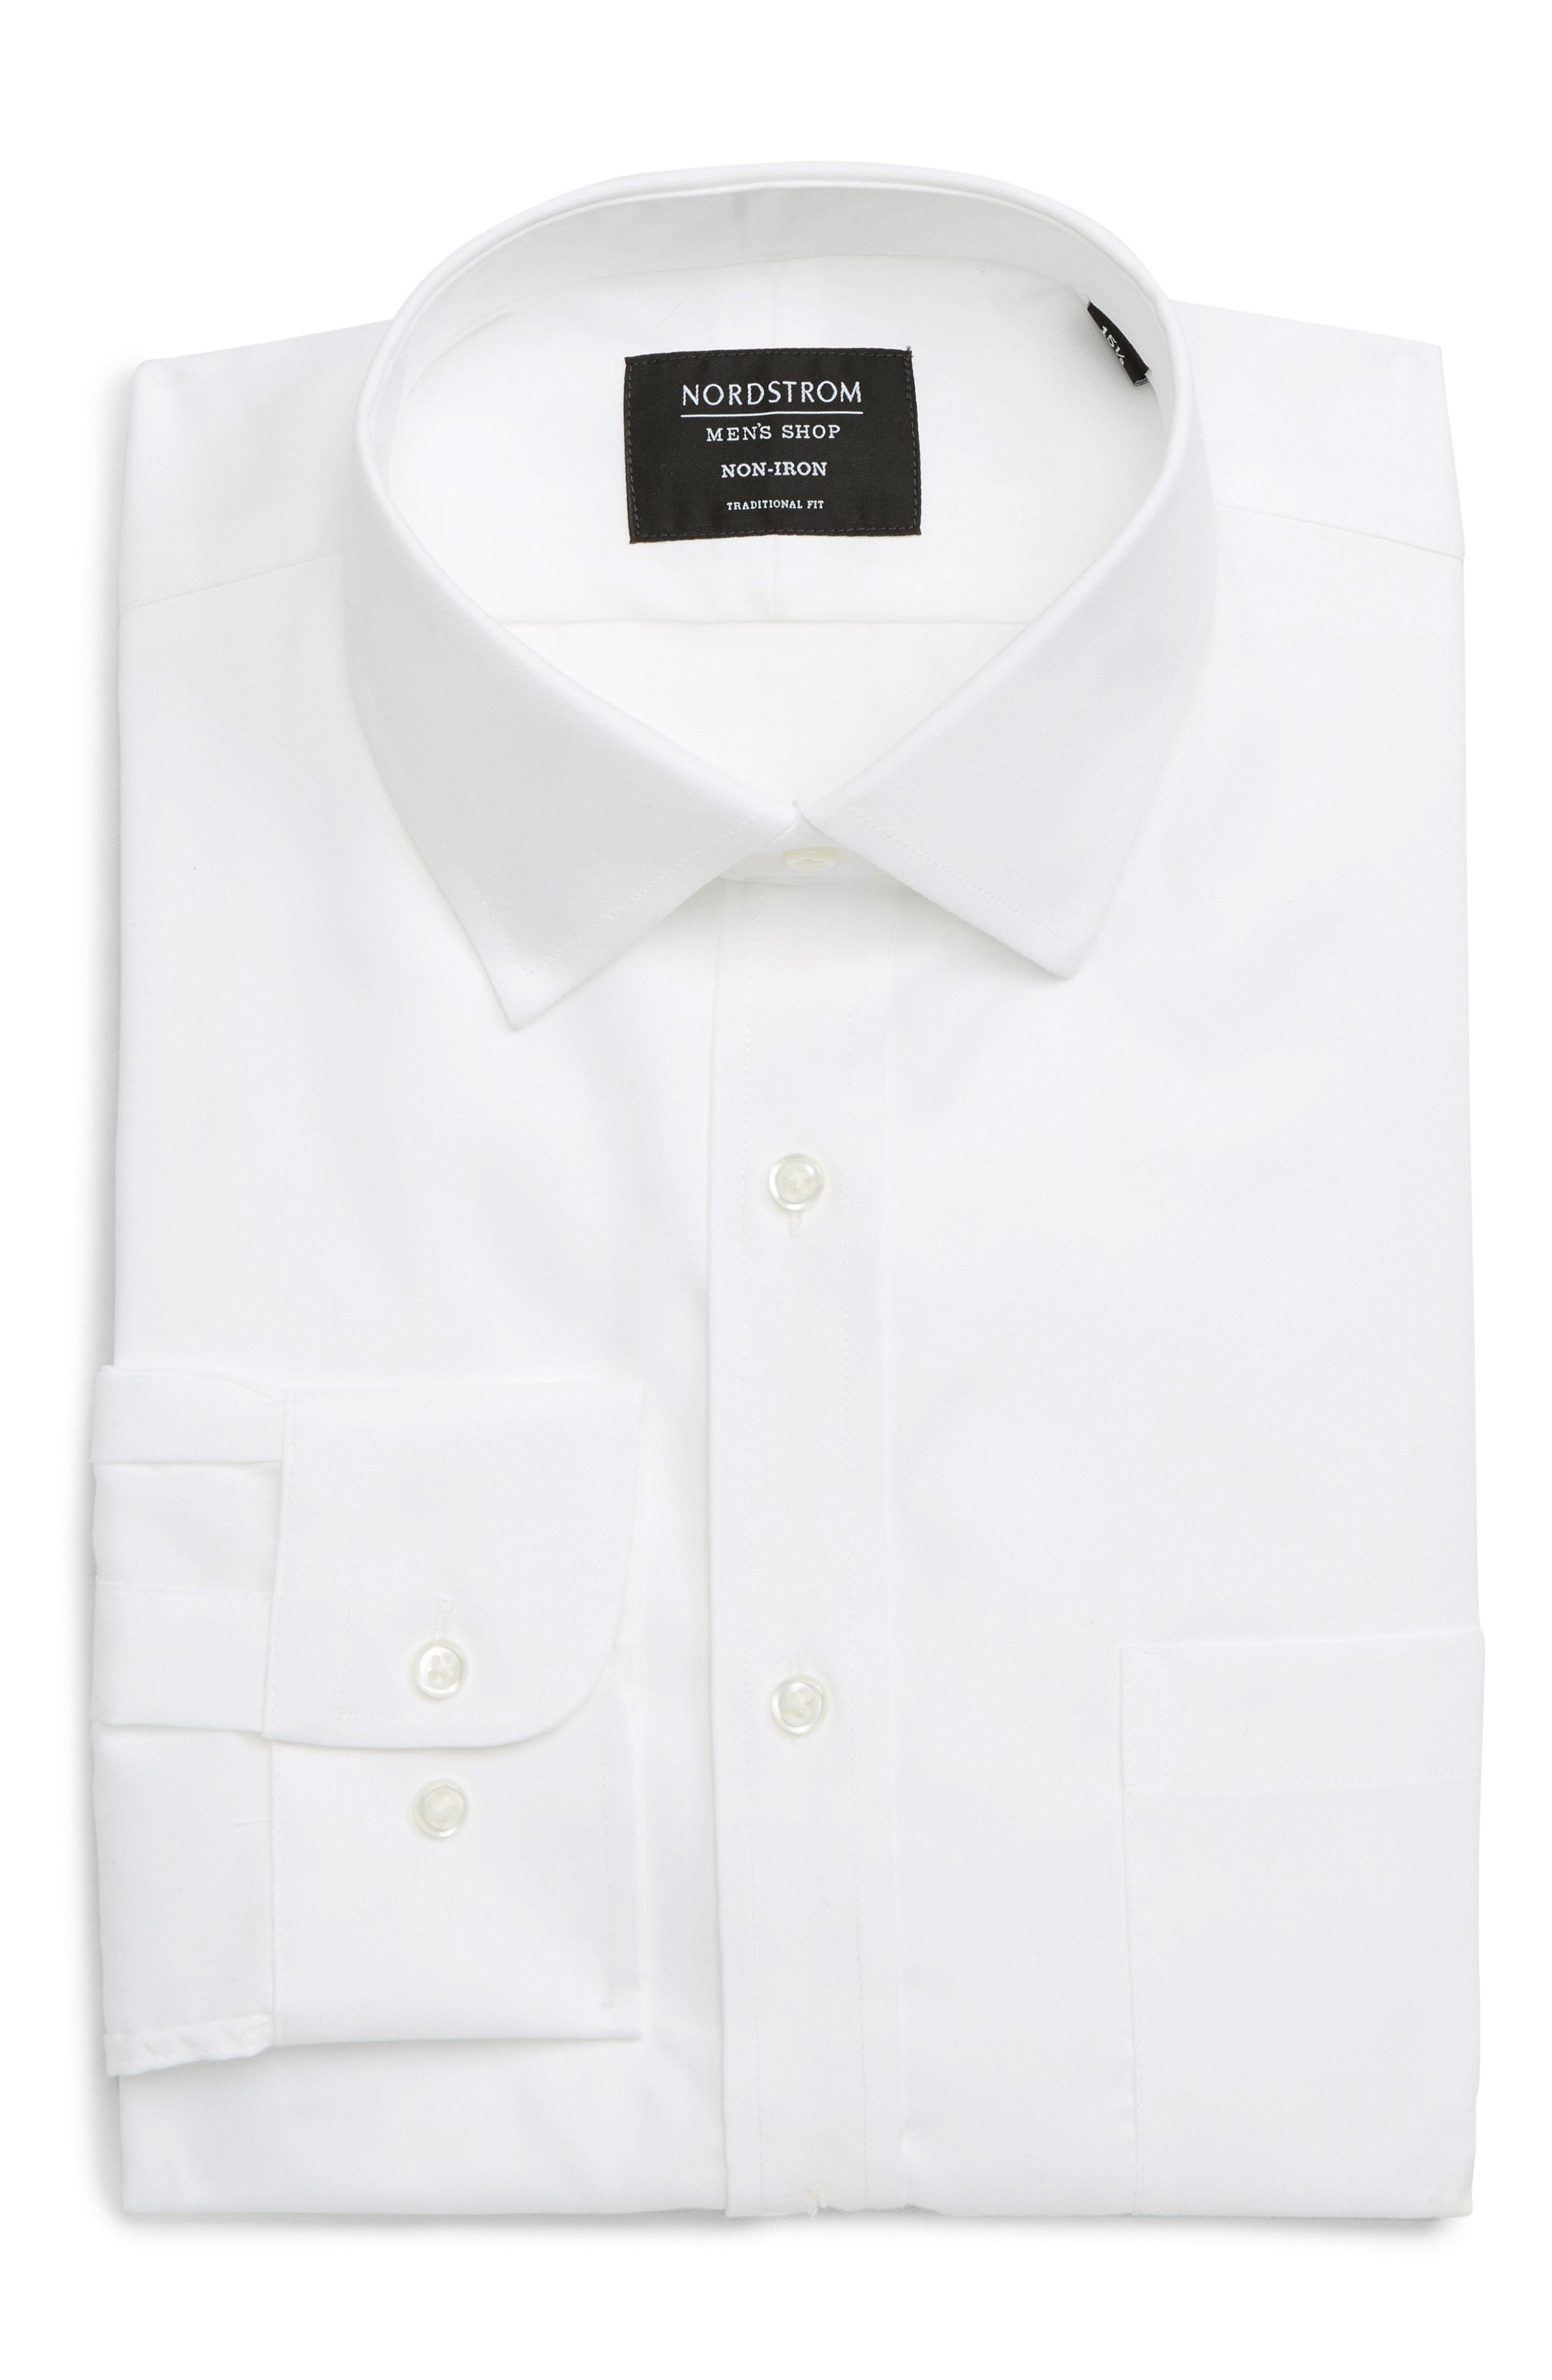 0746001dff1e5 Lyst - Nordstrom Traditional Fit Non-iron Dress Shirt in White for Men